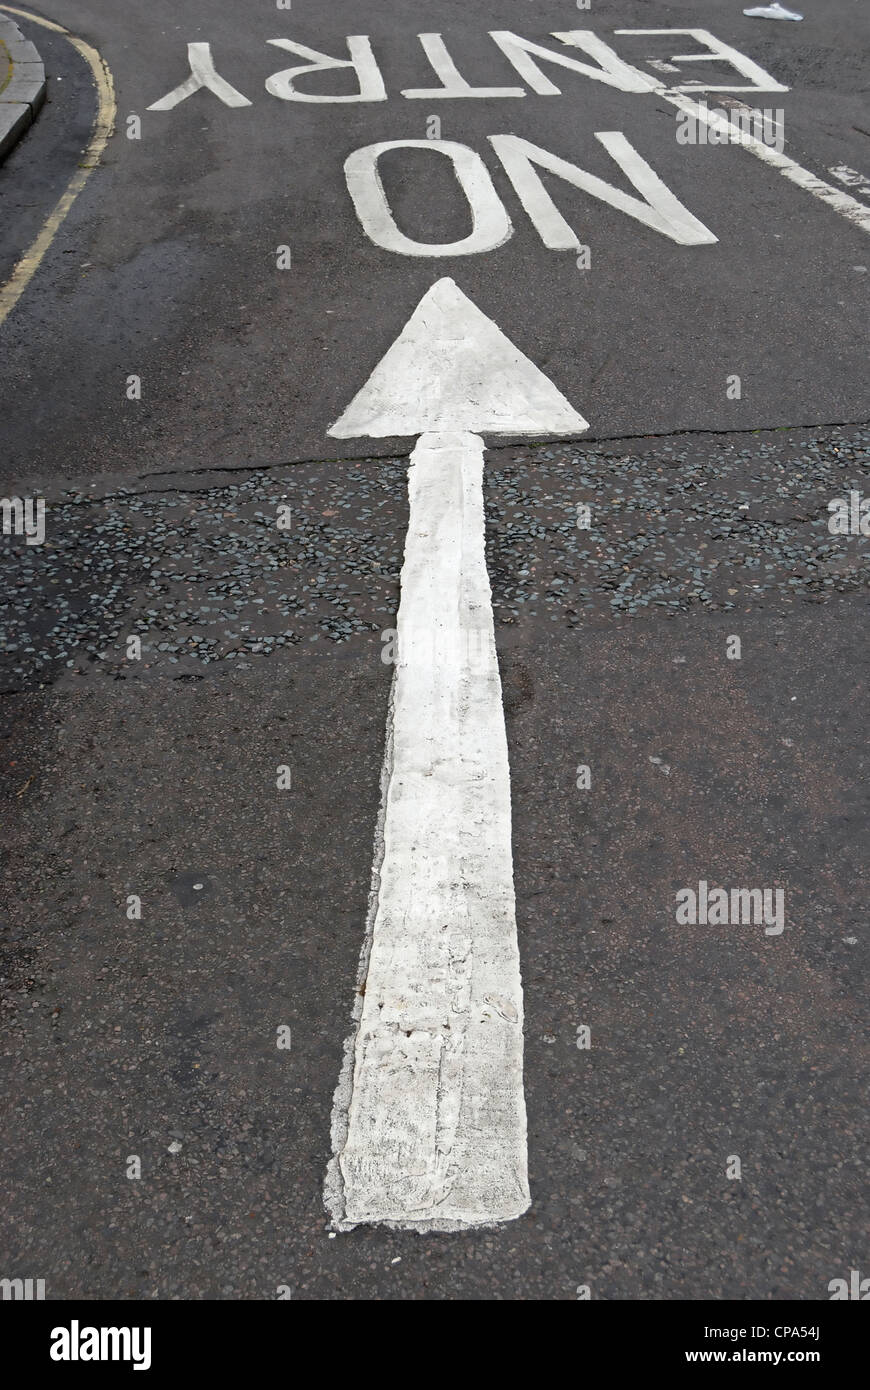 road markings with arrow pointing towards no entry instruction for traffic approaching in opposite direction - Stock Image